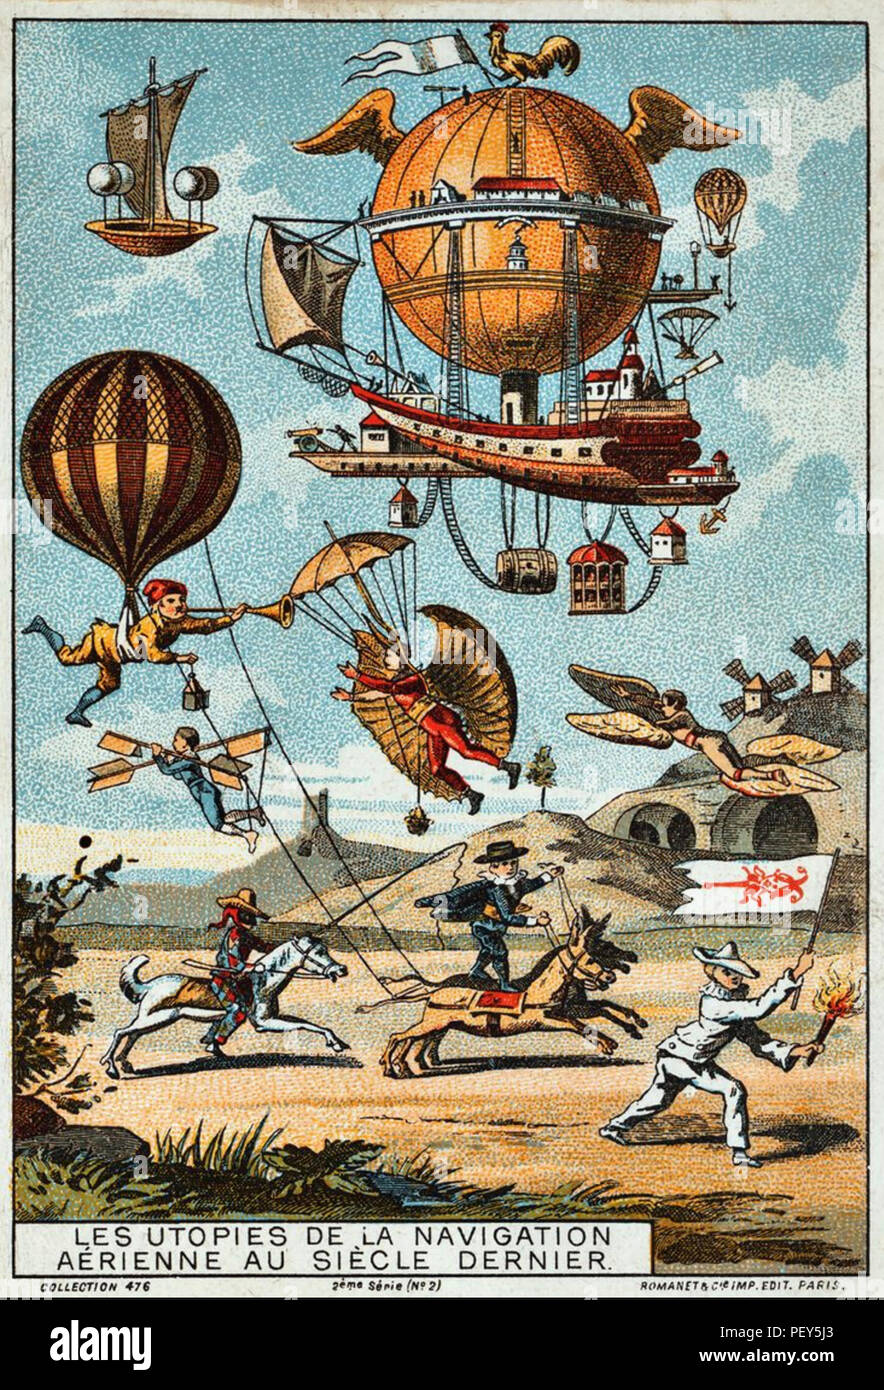 EARLY FLIGHT One of a series of French collecting cards published between 1890 and 1900 - Stock Image